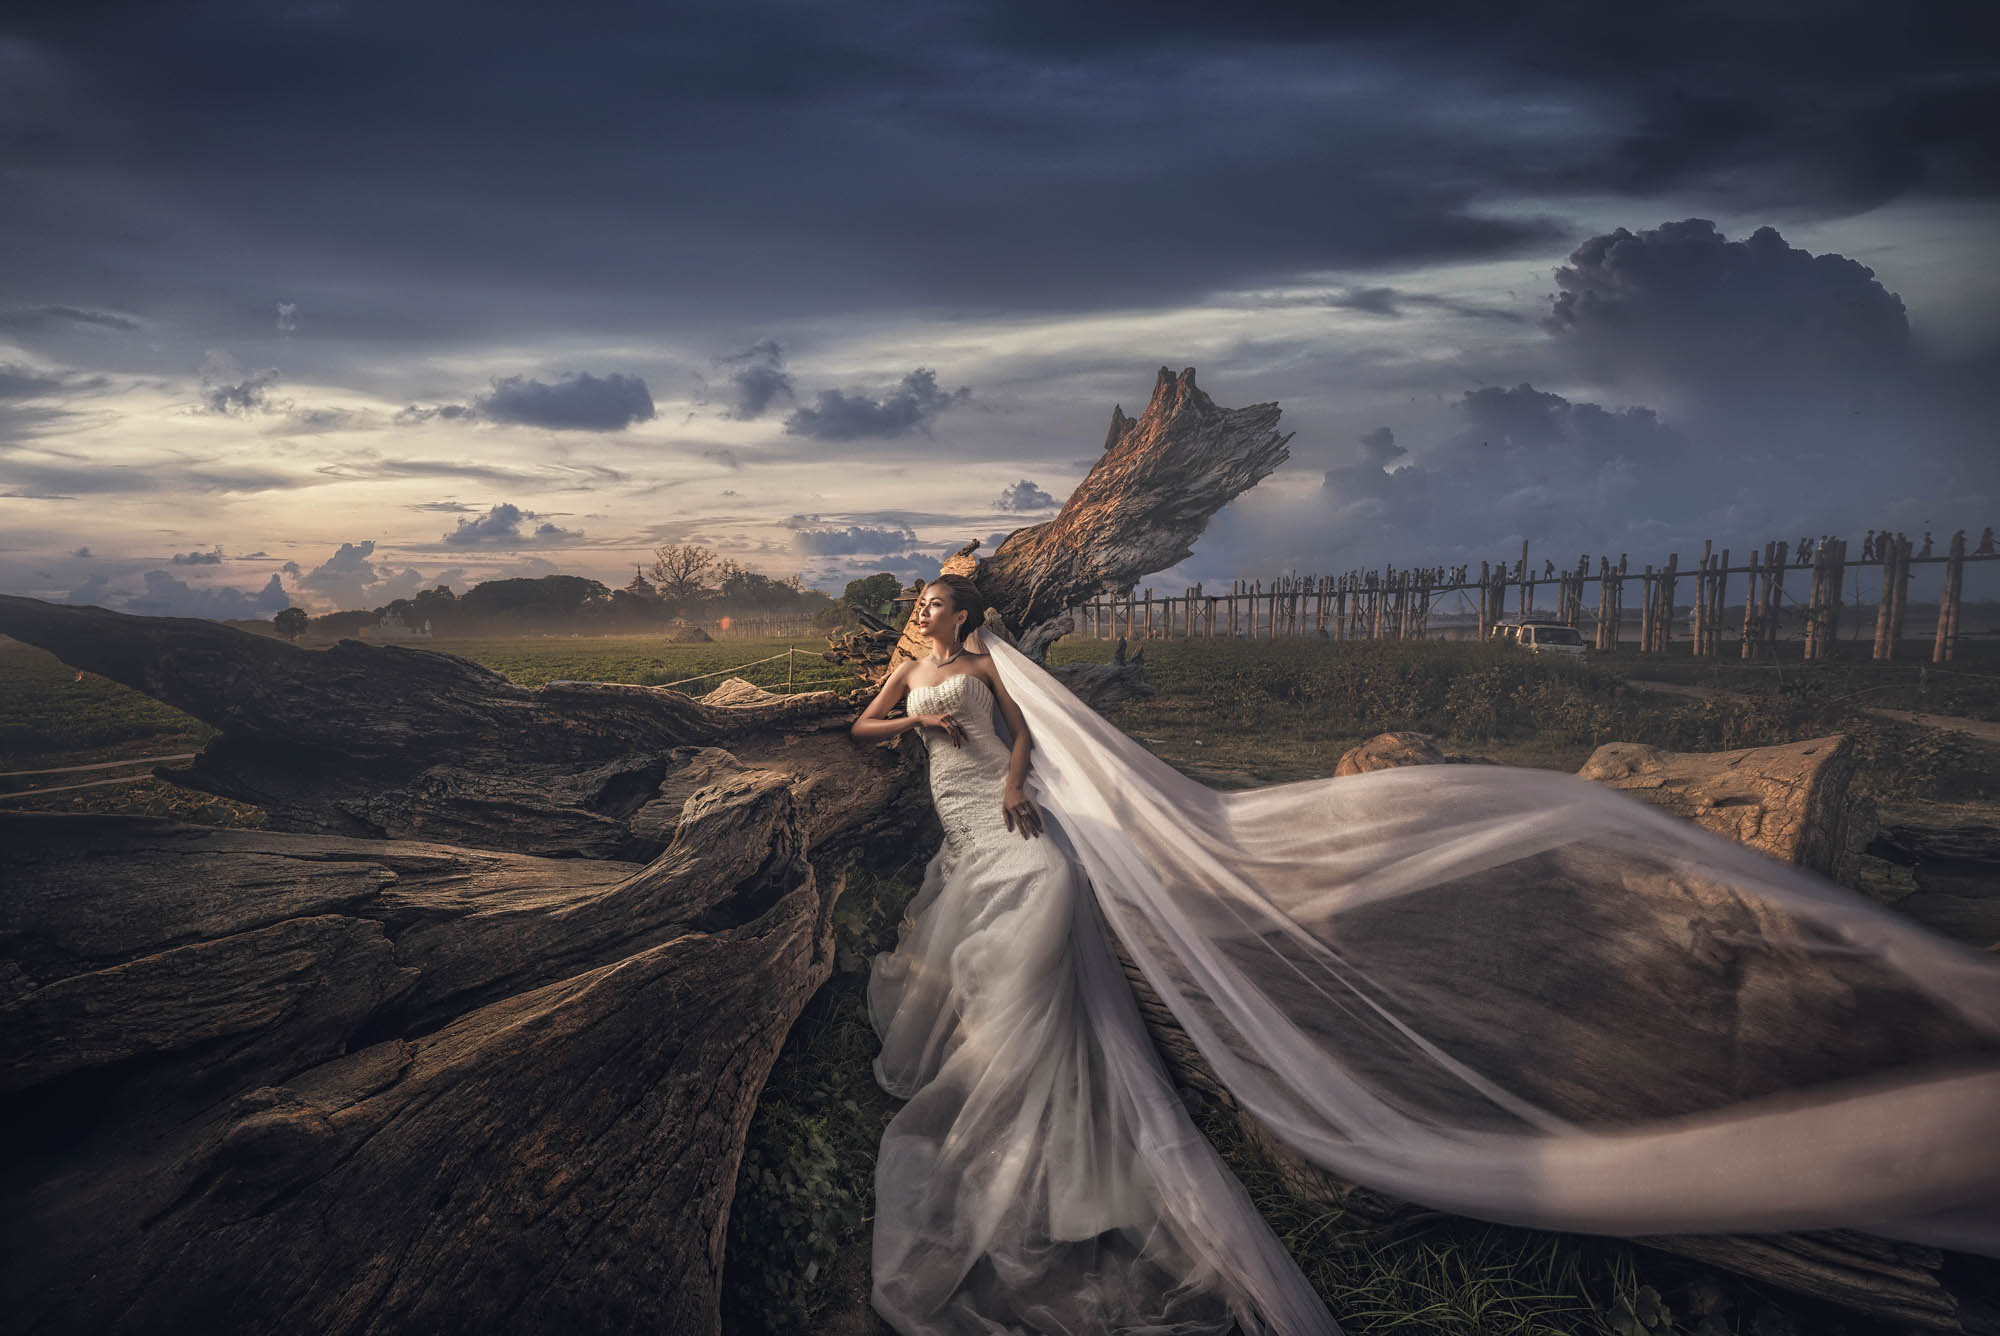 Bride in dramatic tulle and chiffon gown pose against countryside scene, by CM Leung